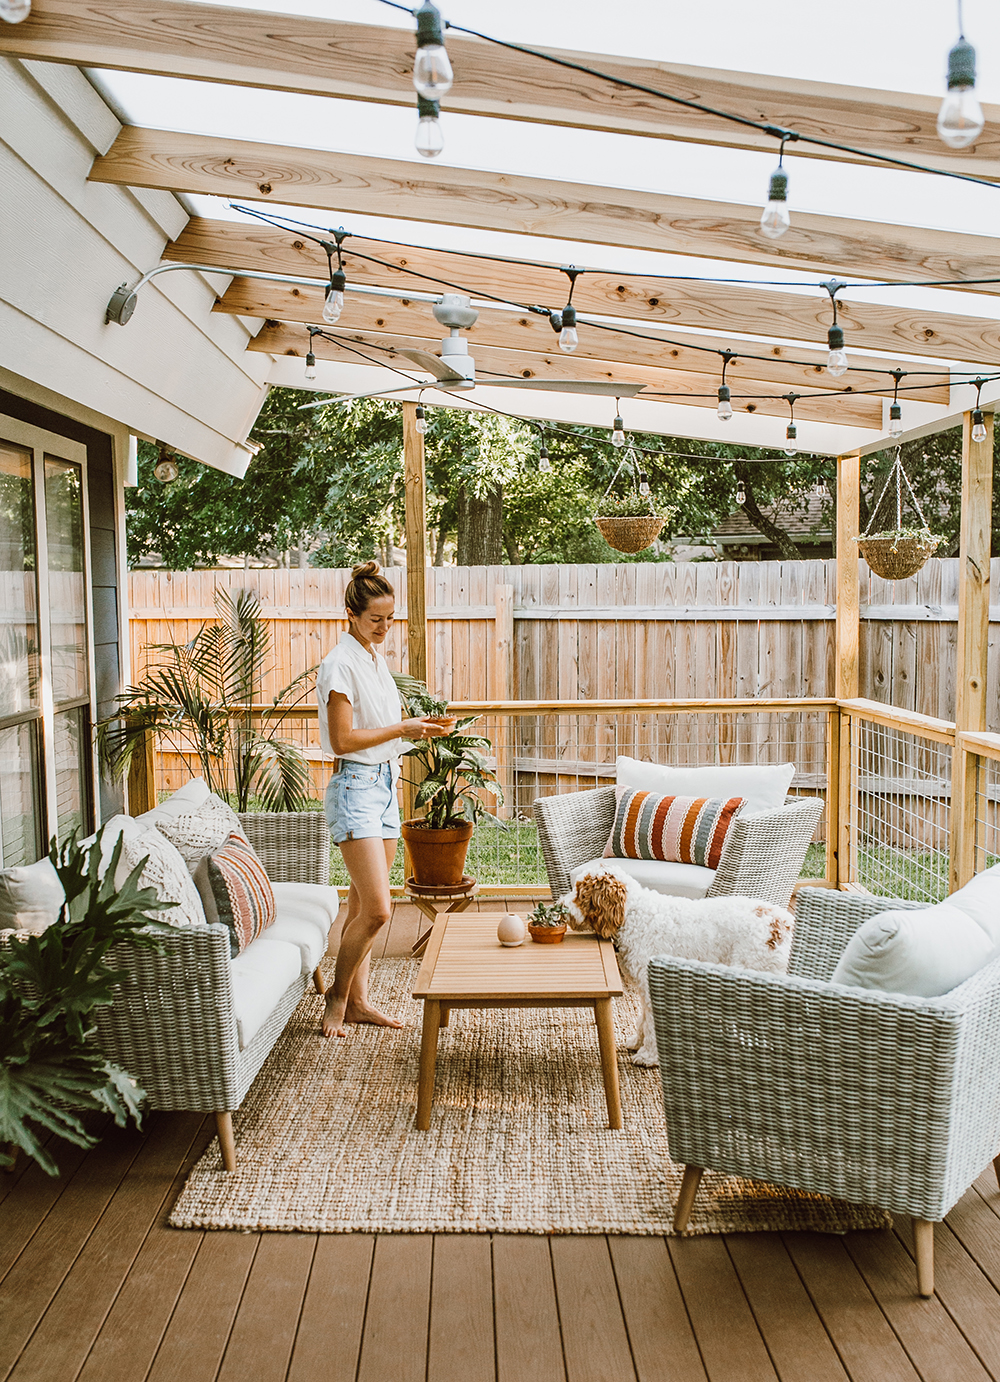 Before & After: Our Patio Reveal! - LivvyLand | Austin ... on My Patio Design id=46493